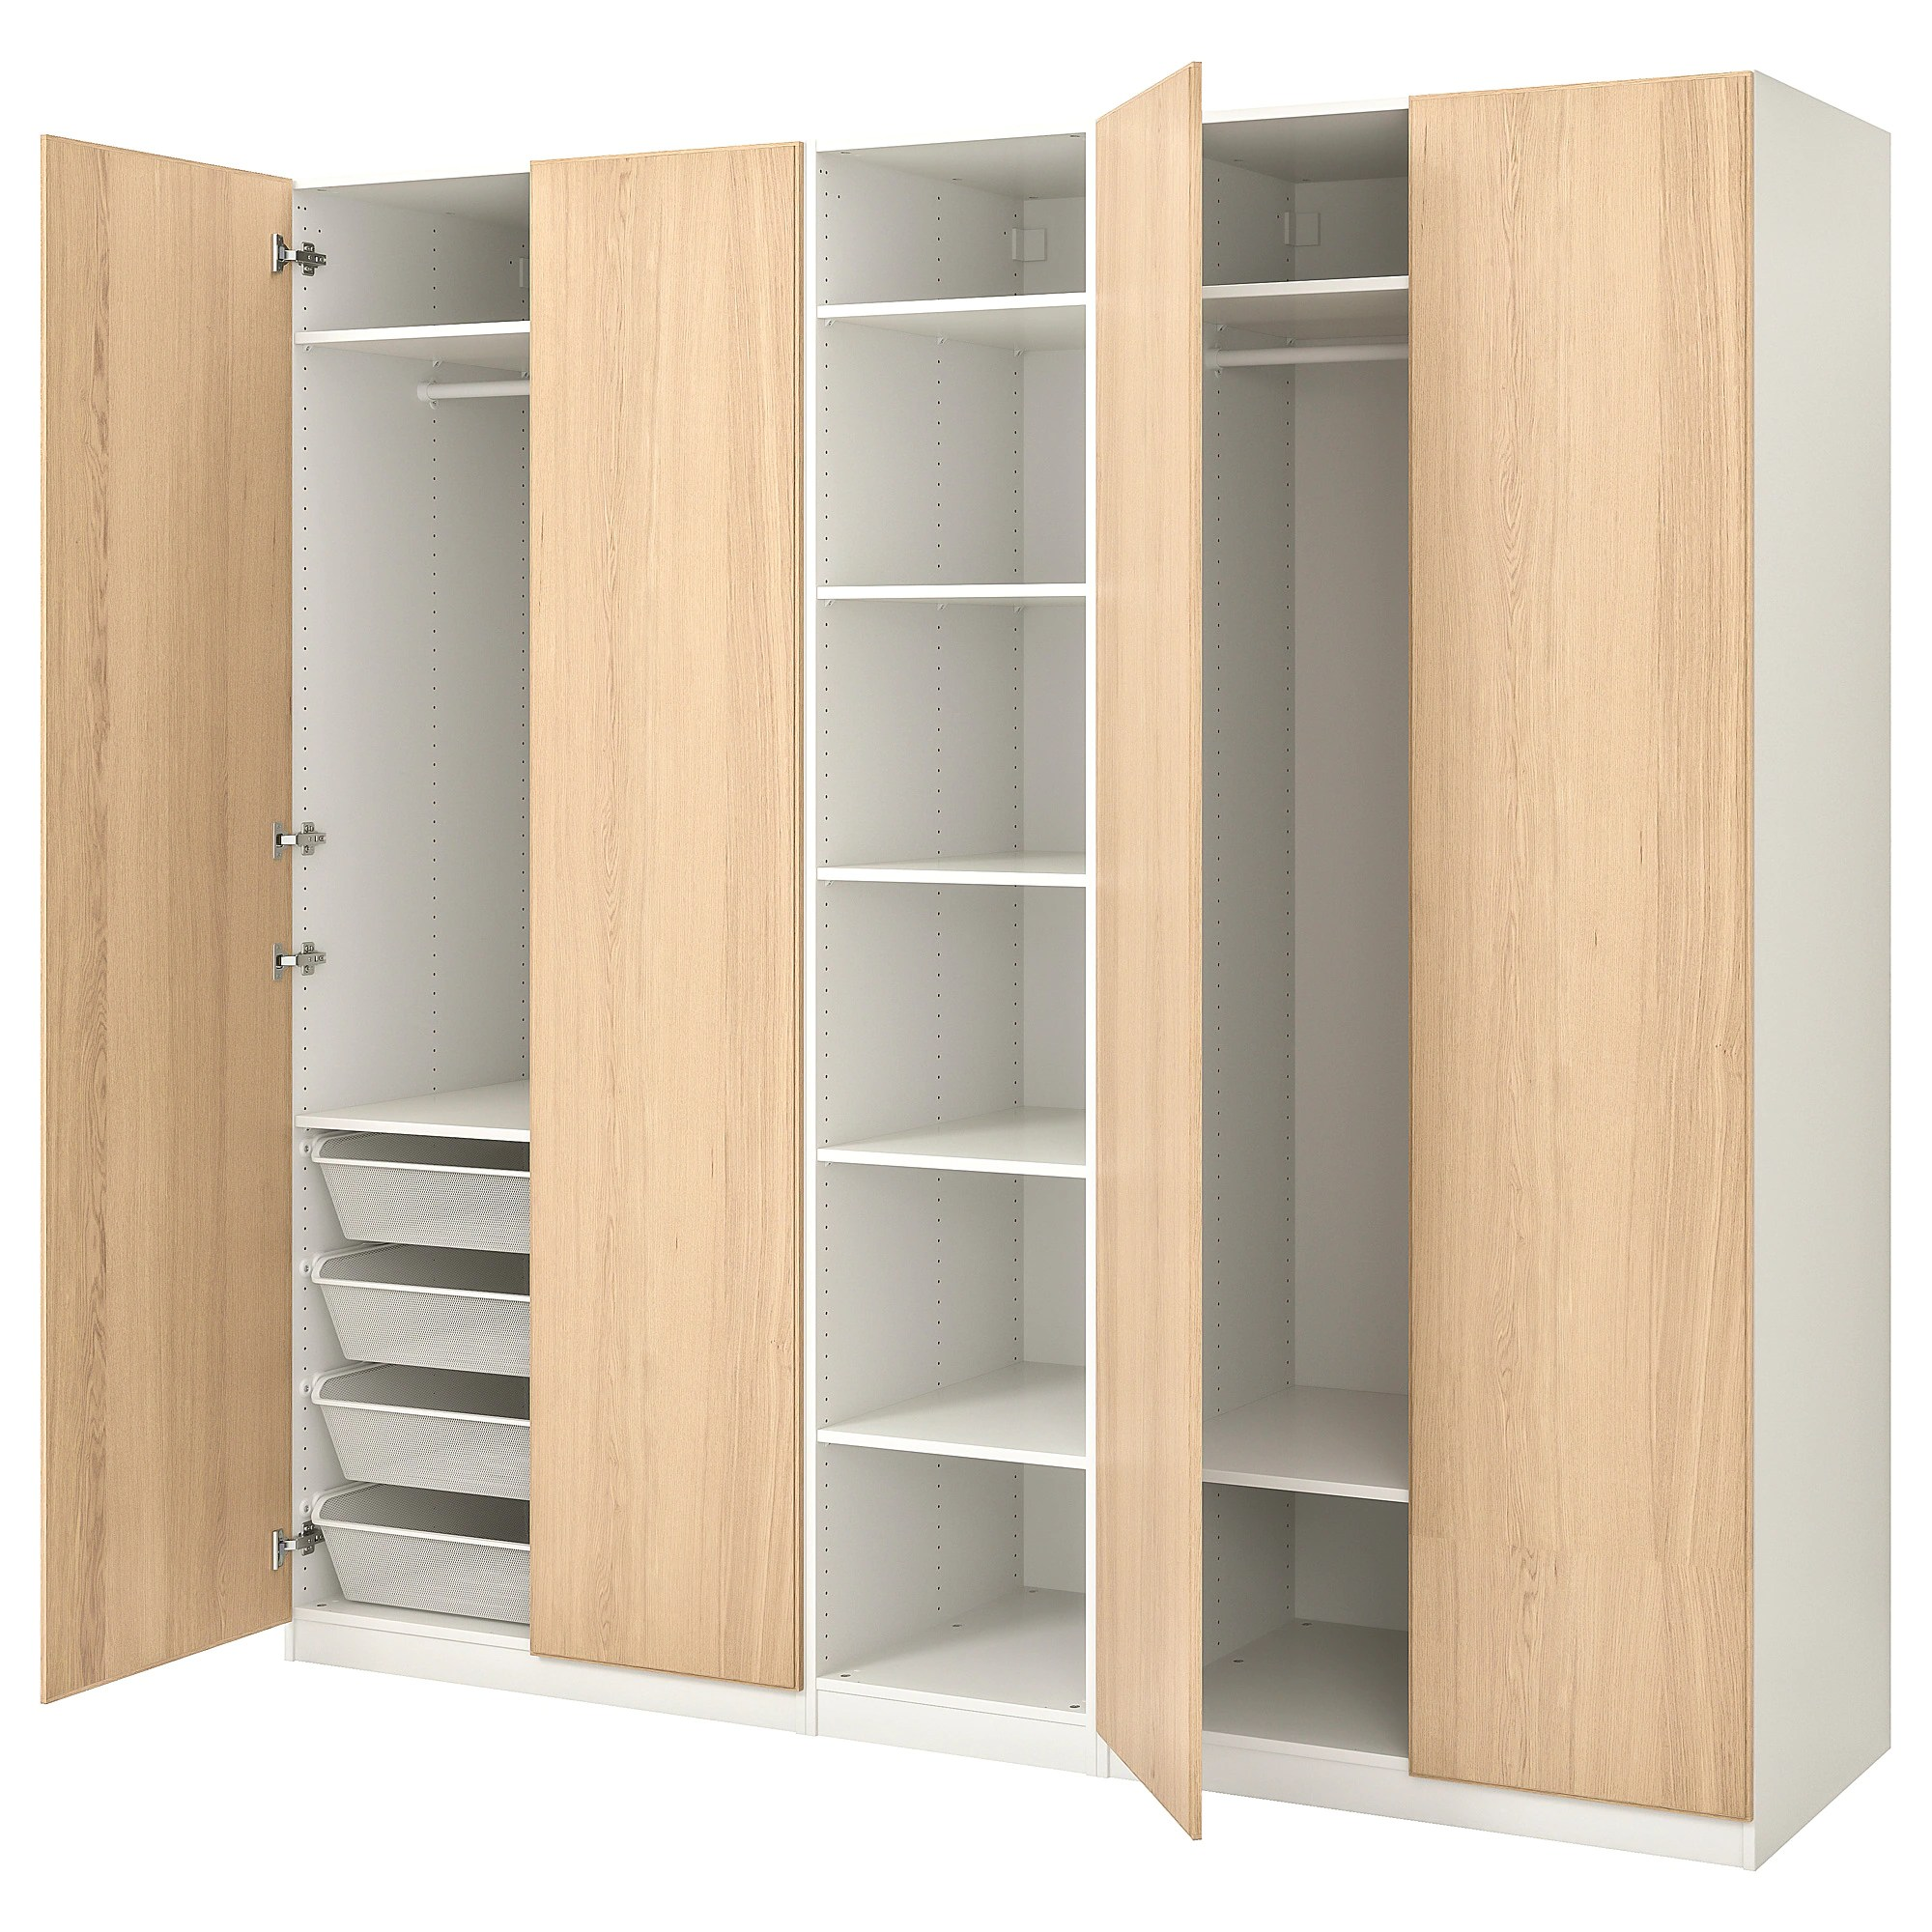 Ikea Pax Click And Collect Pax Wardrobe White Repvåg White Stained Oak Veneer